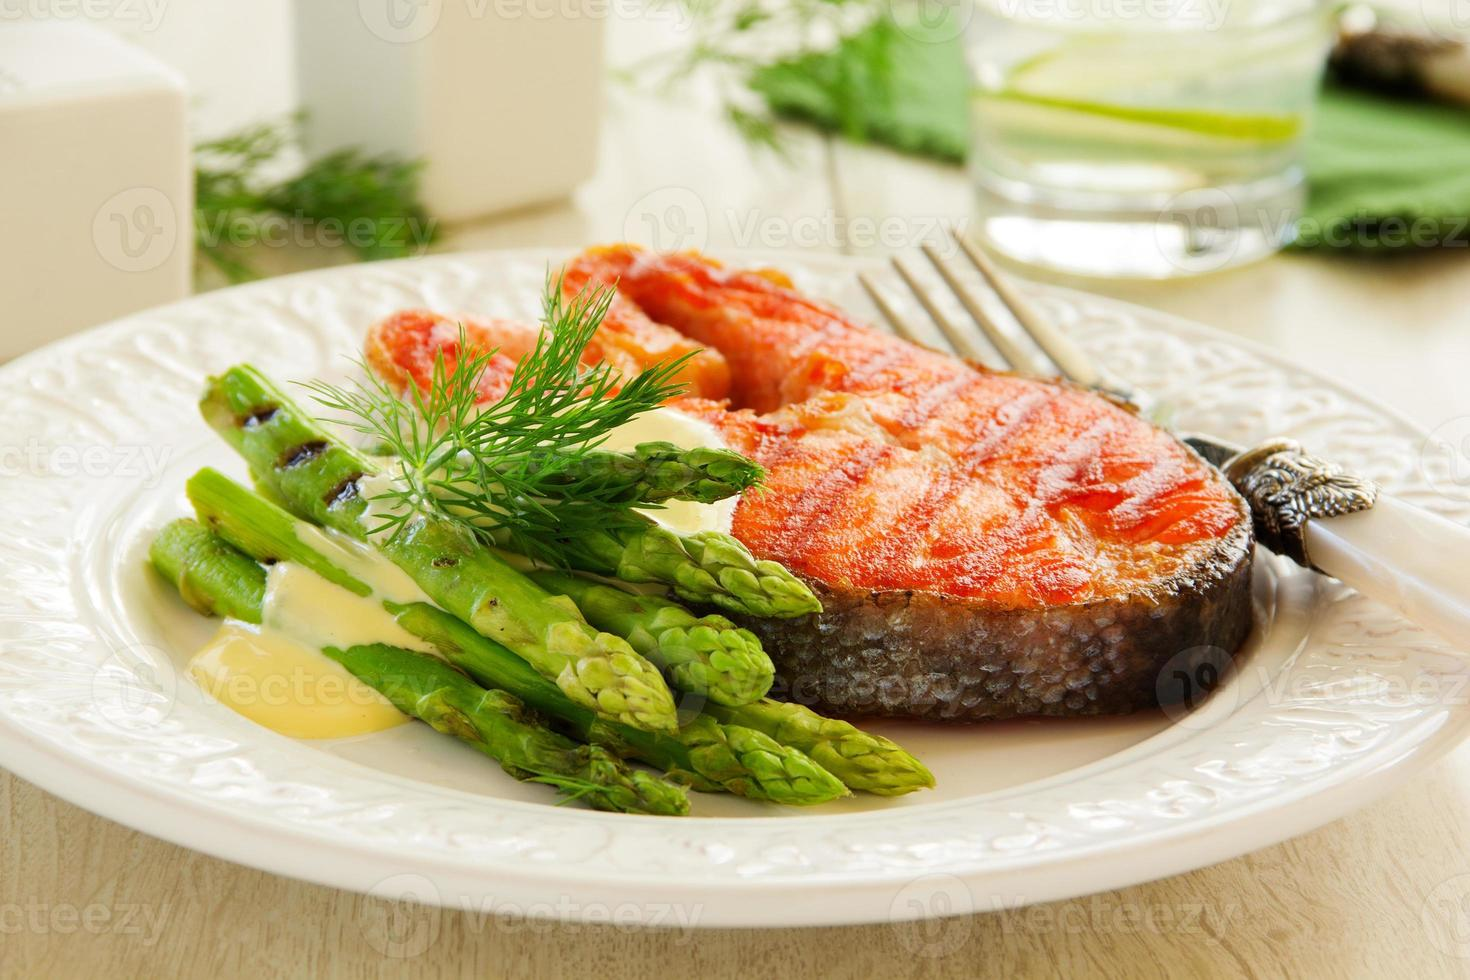 Grilled salmon steak with asparagus. photo